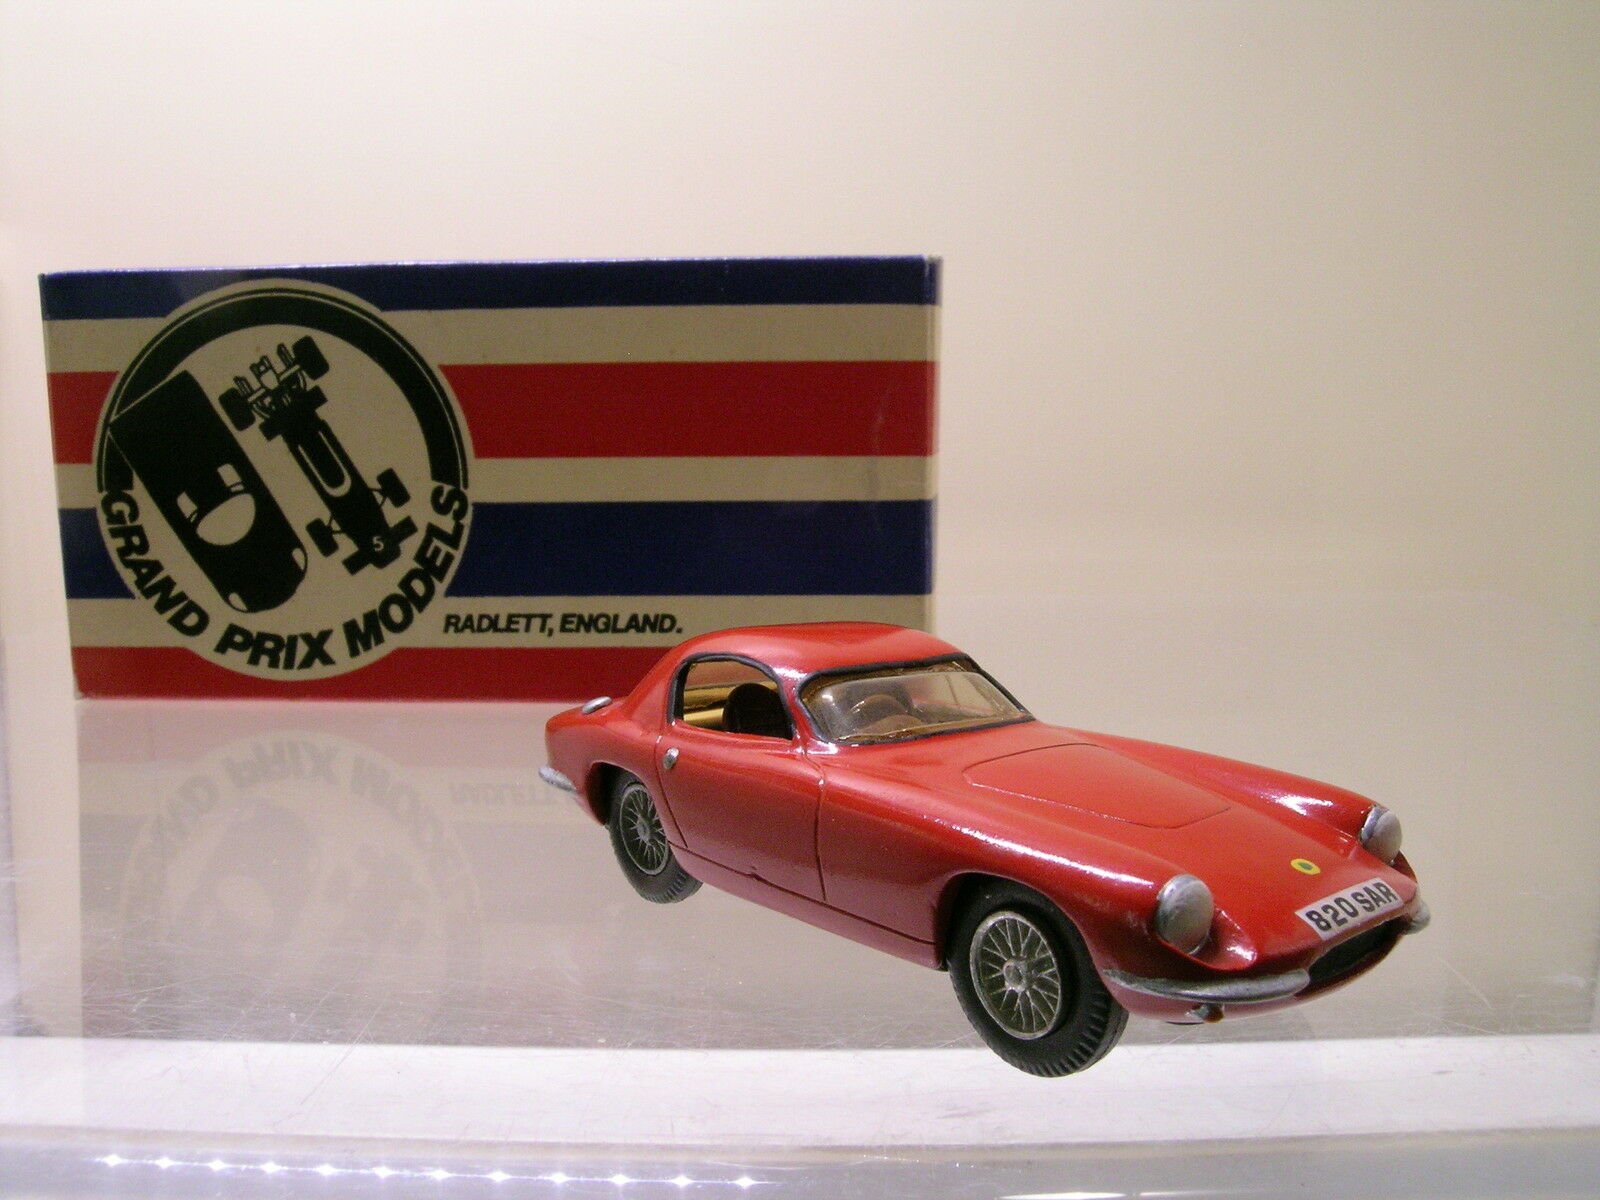 GRAND PRIX MODELS 2  LOTUS ELITE rouge HANDBUILT blanc-METAL BOXED 1 43  design unique